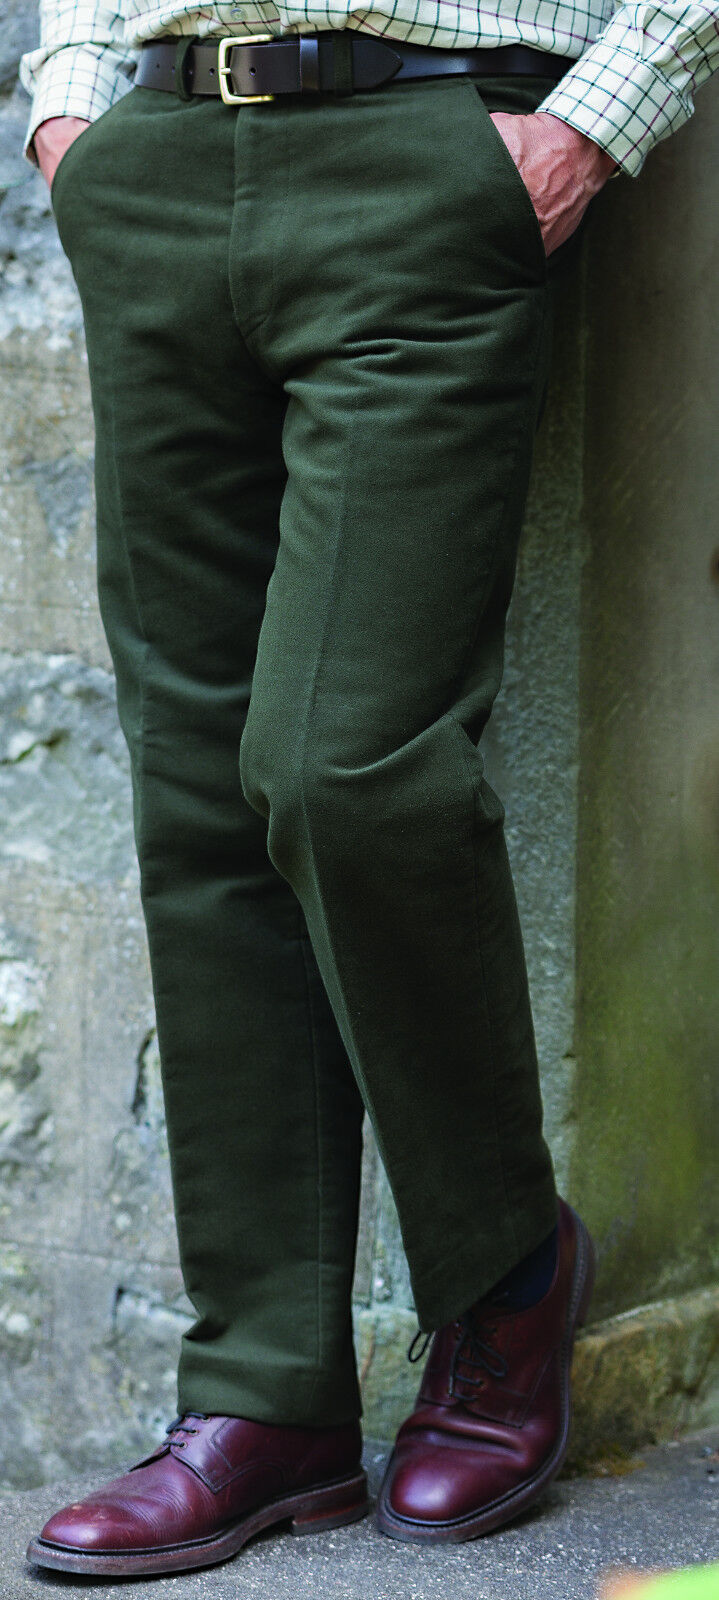 Hoggs of Fife Monarch Moleskin Trousers - Heavy Weight 100% Cotton